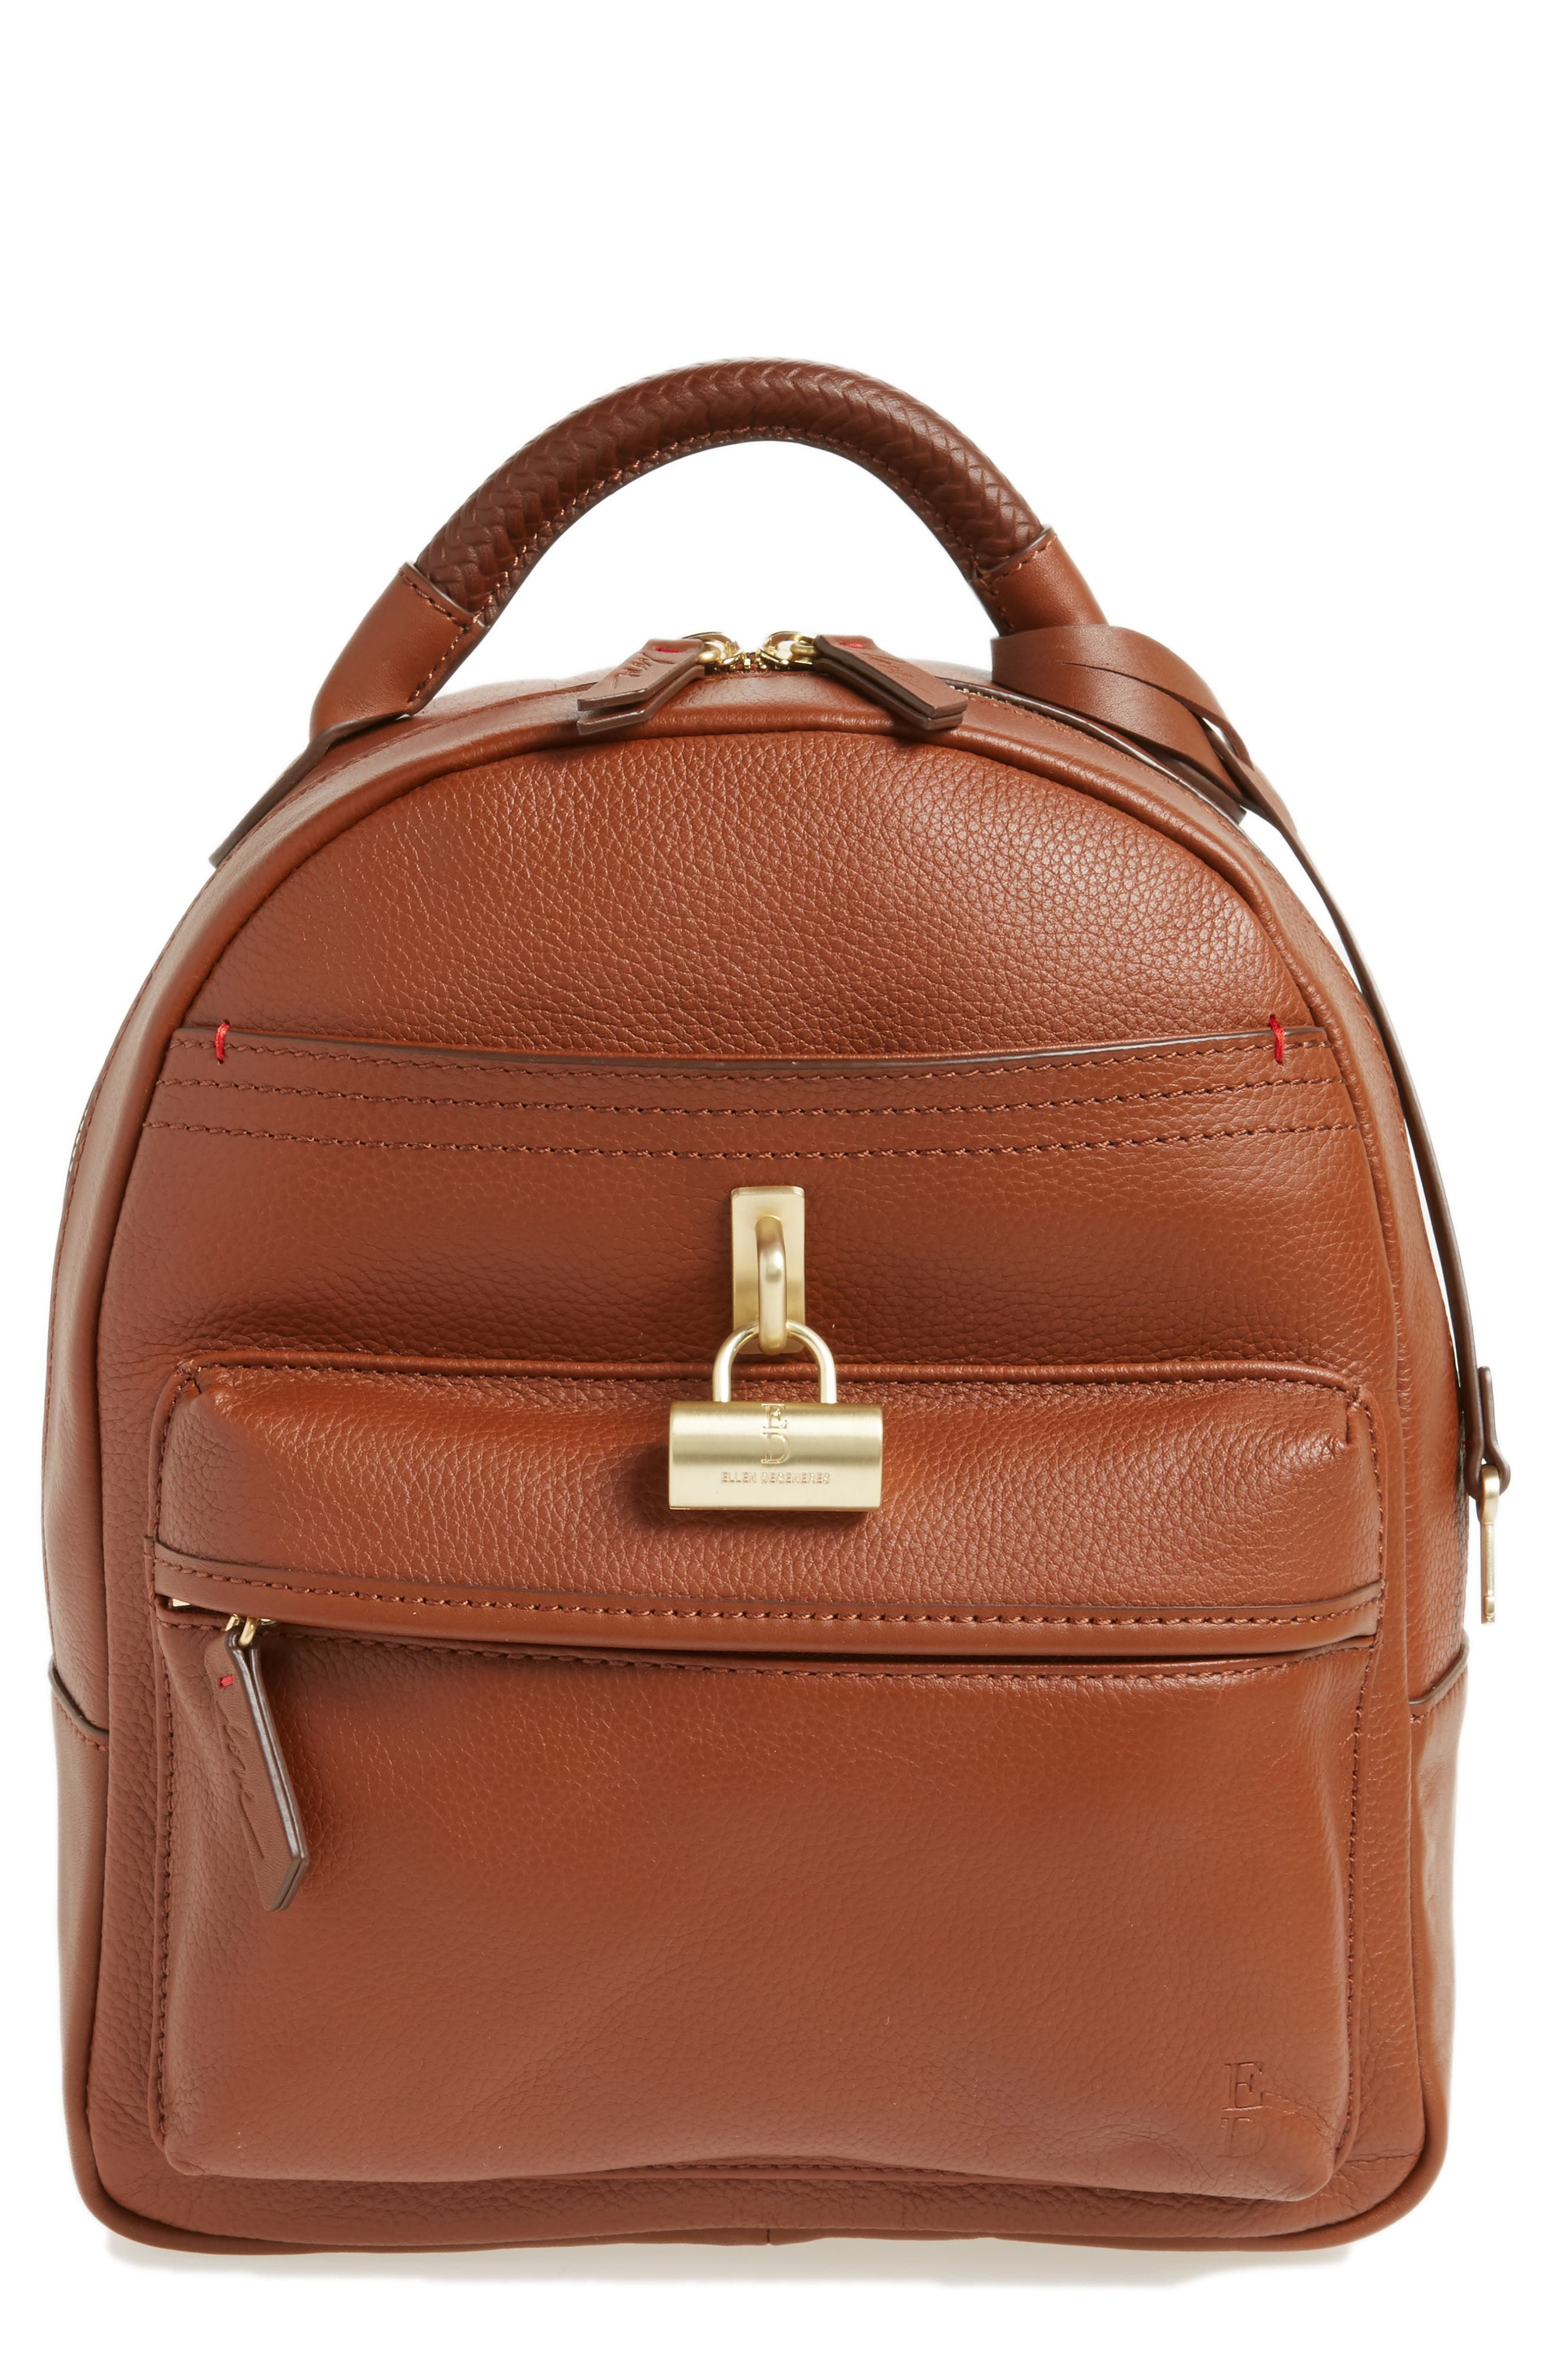 Brody Leather Backpack,                         Main,                         color, 242